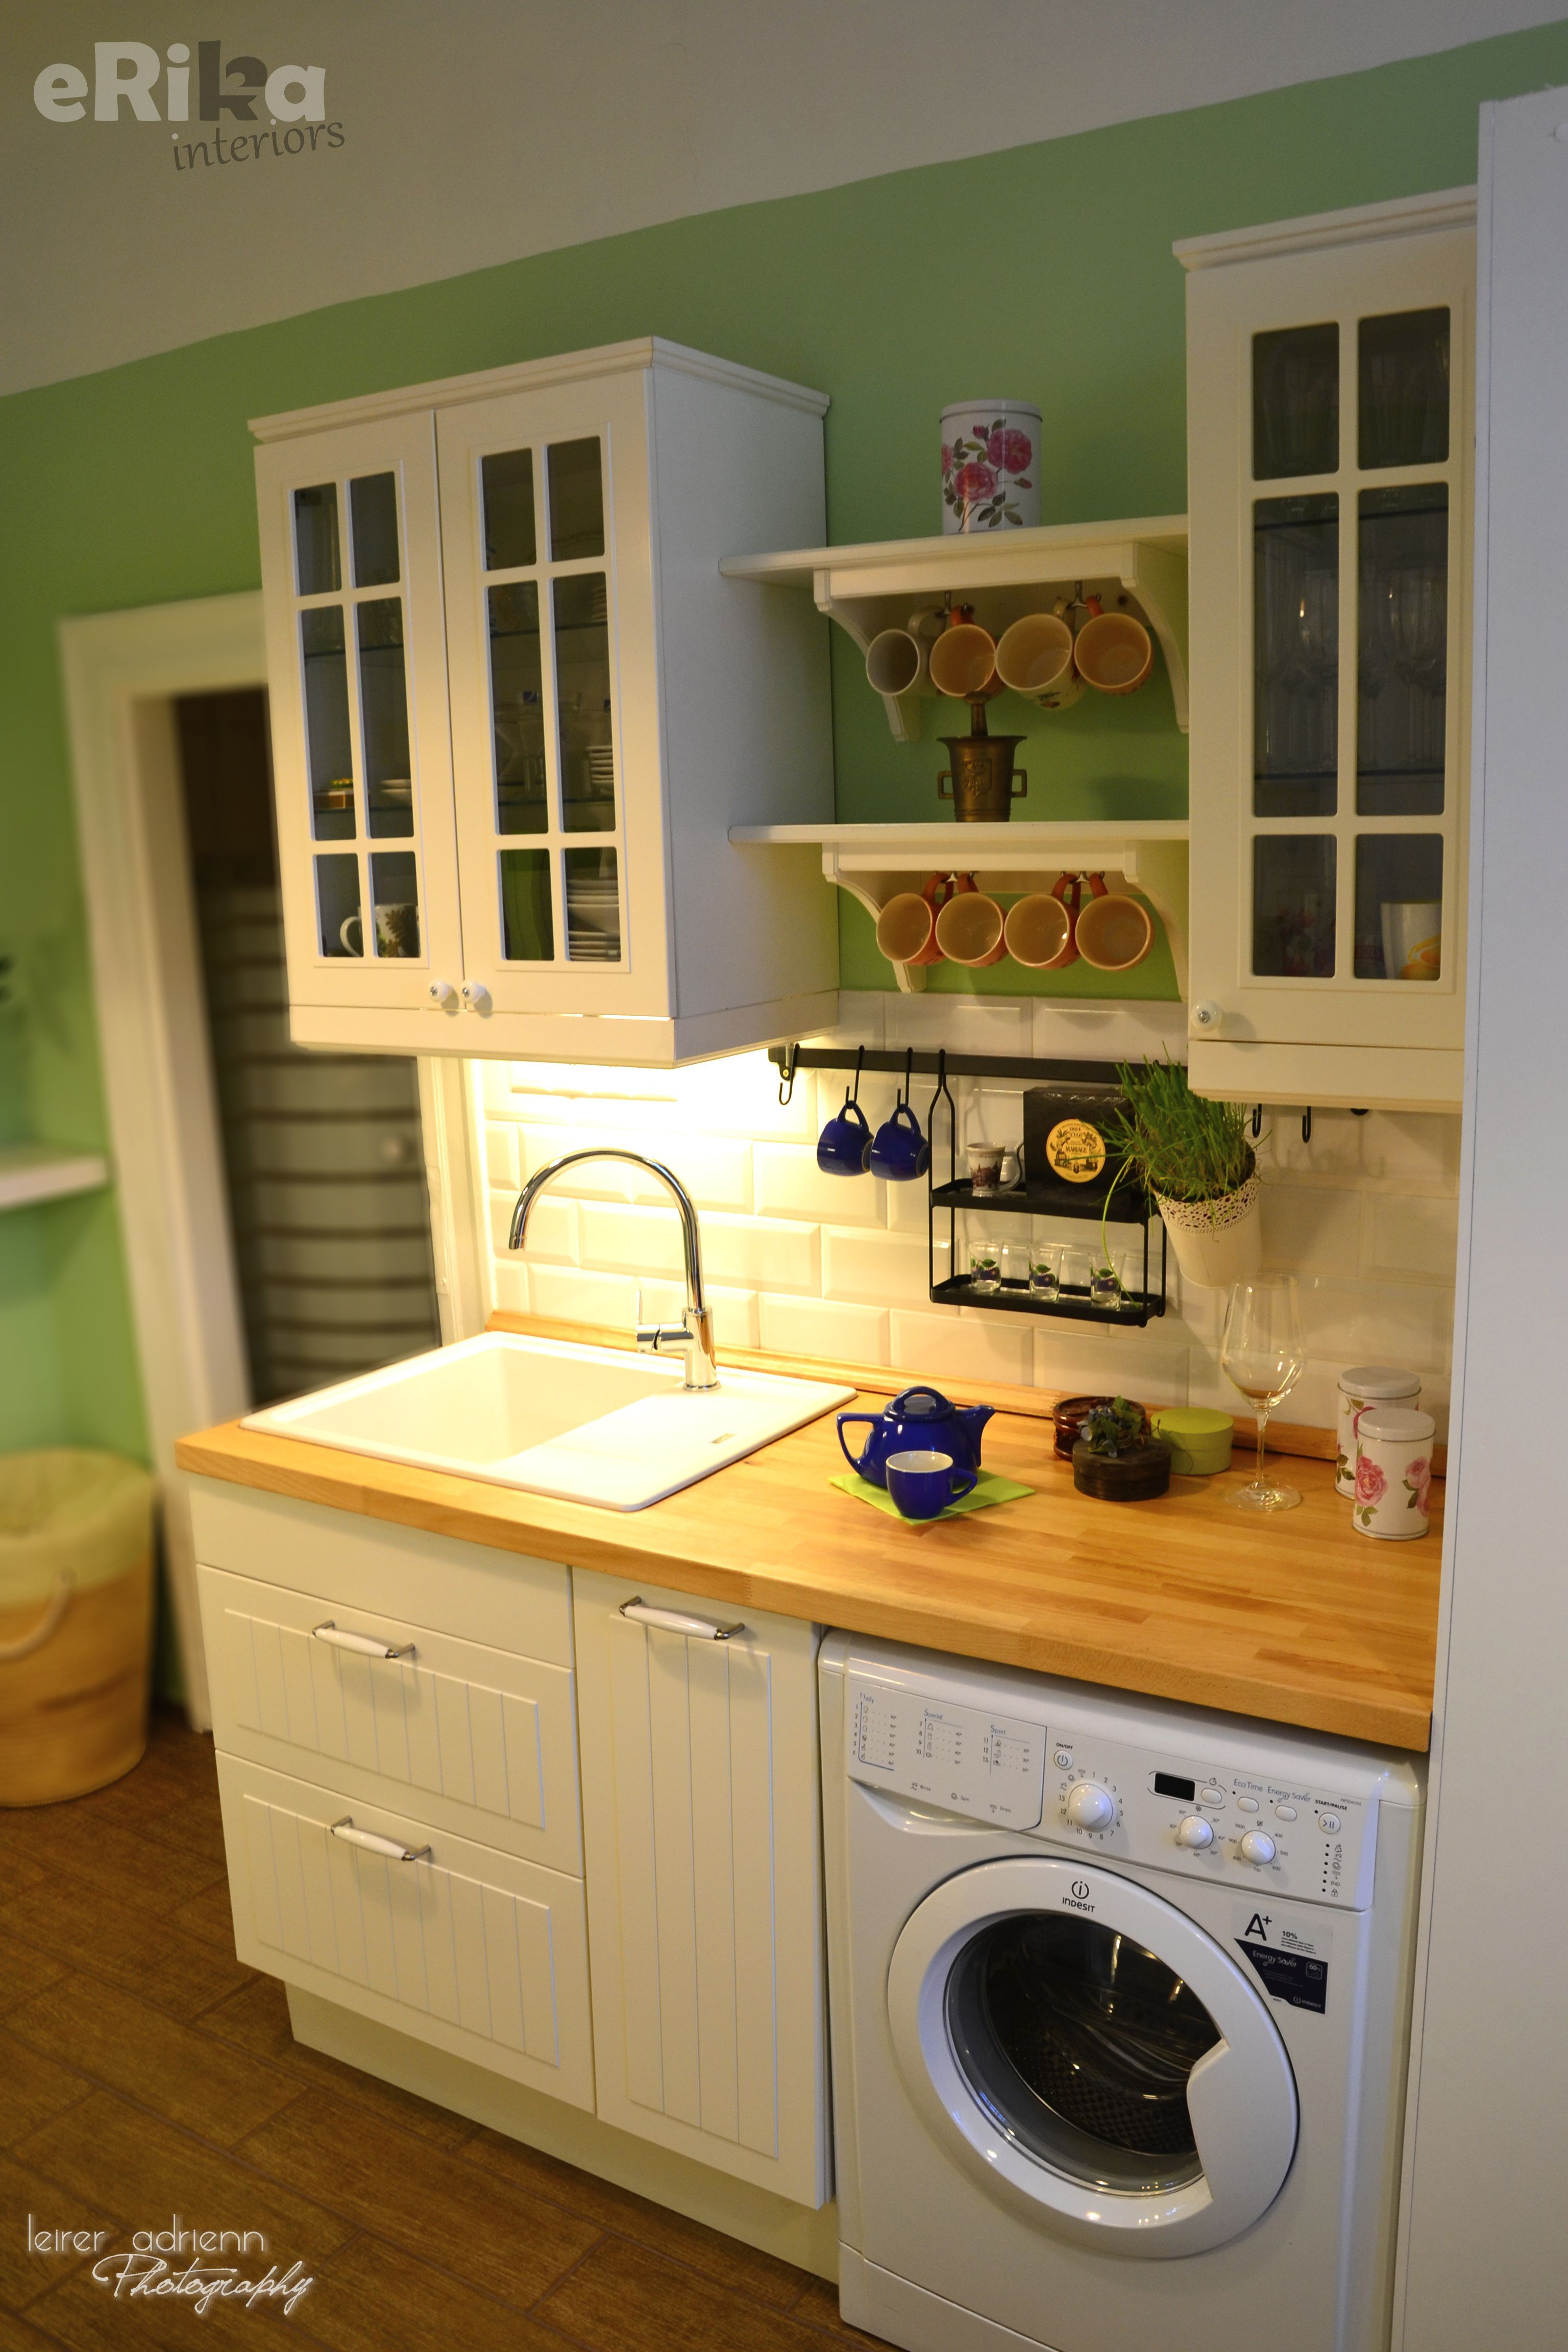 White  Country  Small Kitchen Country Decor Green Walls White Delectable Small Kitchen Interior Design Images Design Ideas